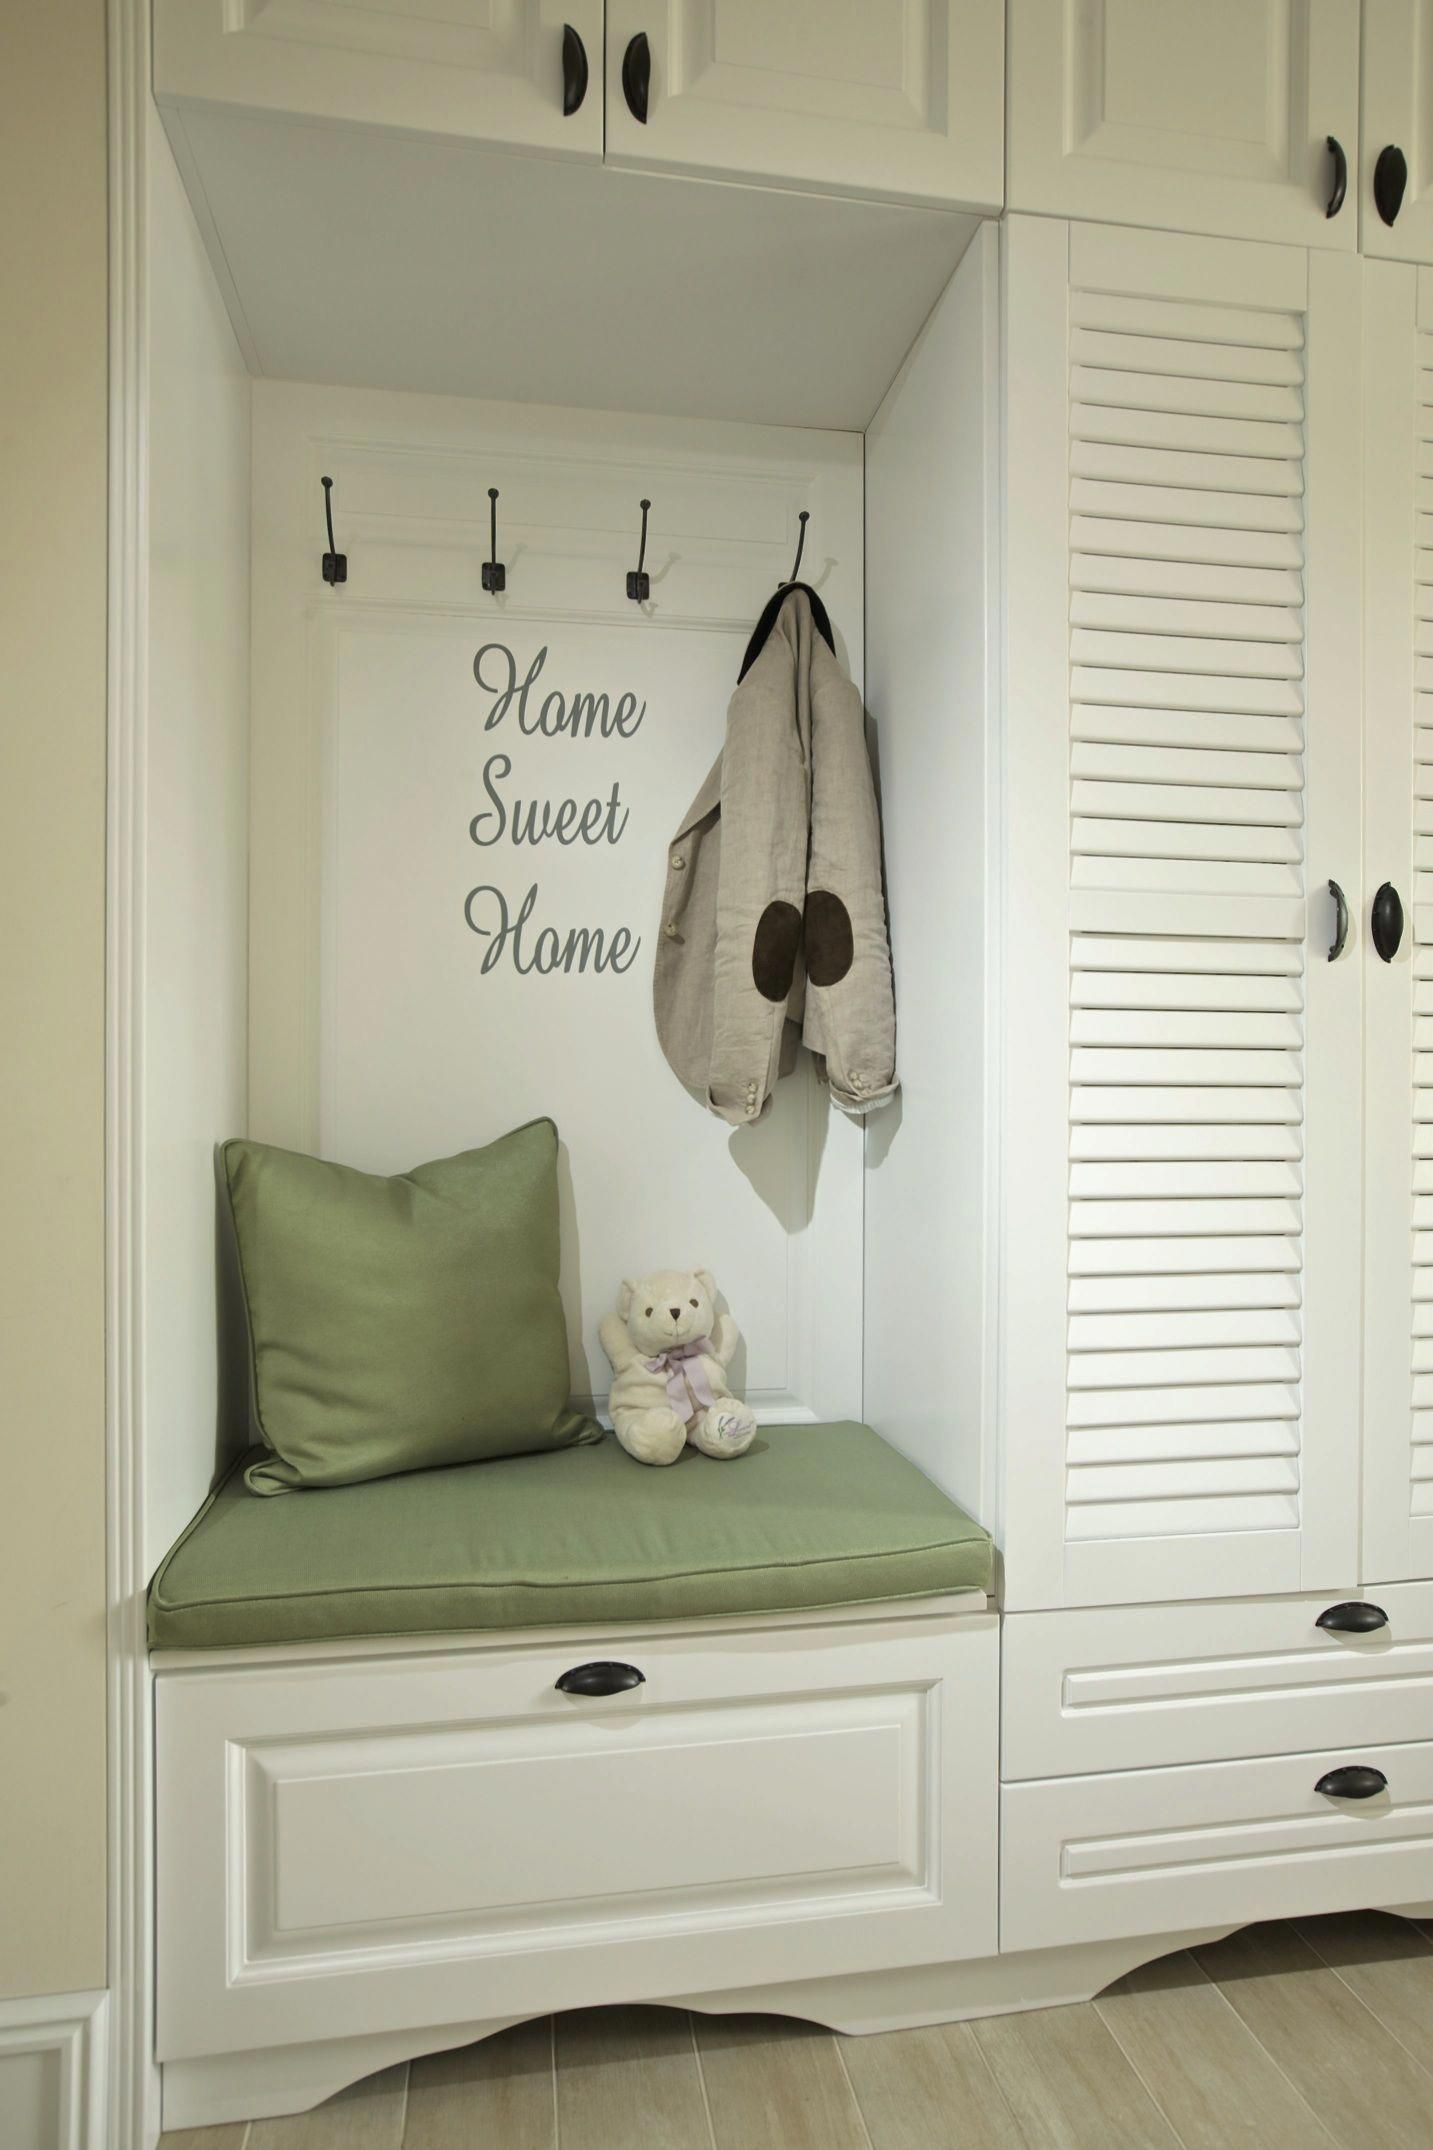 Awesome Chic Decor Ideas Shabby Shabby Chic Kitchen Mint Signs 8 Healed Cool Tricks Shabby Chic Fab In 2020 Shabby Chic Zimmer Chic Wohnzimmer Leder Wohnzimmer